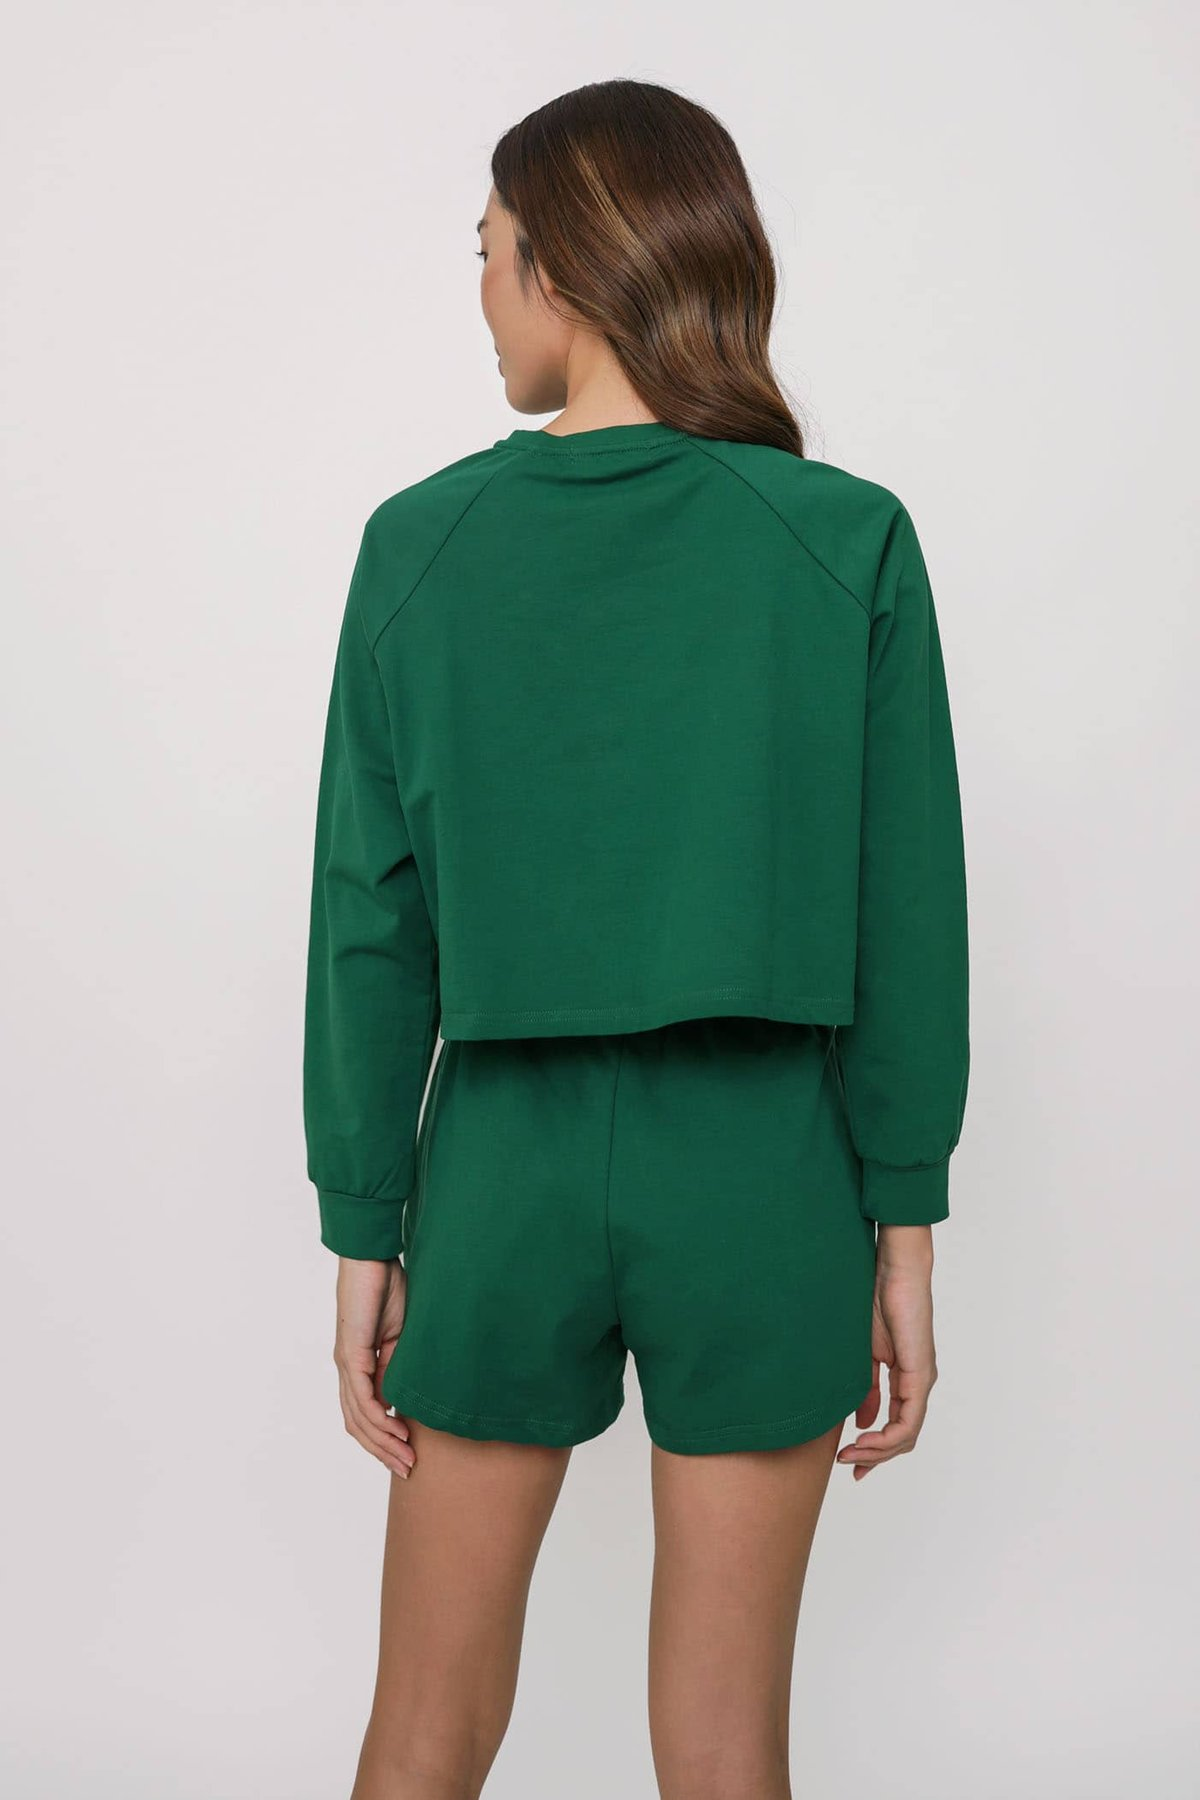 Good Things Pullover Set (Green) Limited Edition